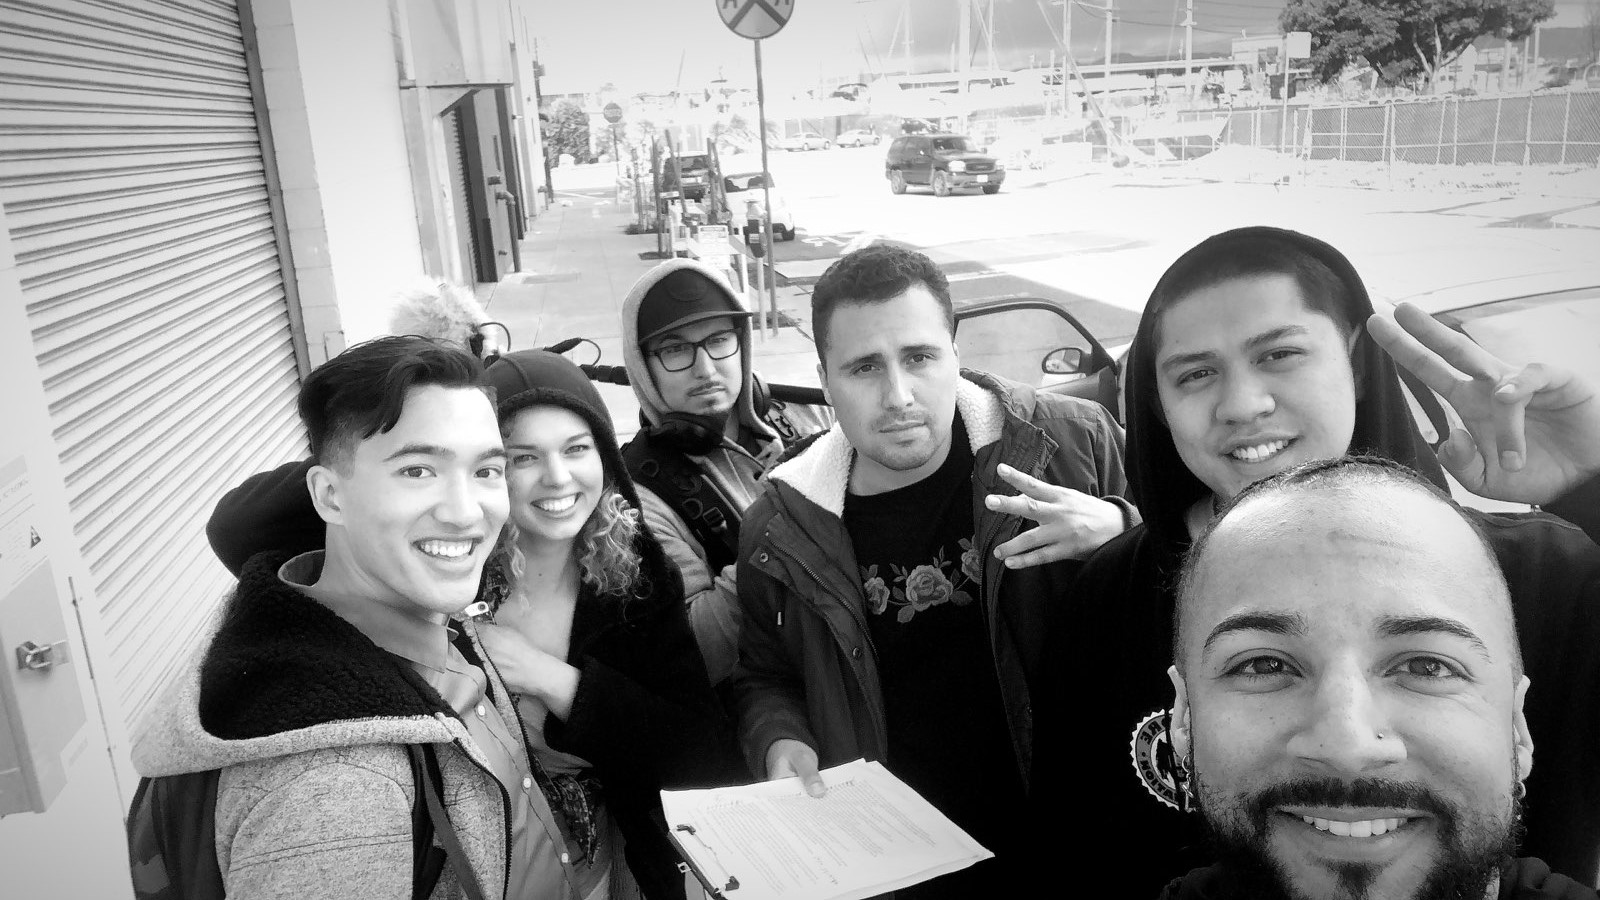 Wrap on  Perfume . From left to right: James Aaron Oh (Jerry),Ashley Trudaine (Terry), Martin Sanchez (Field Audio Engineer), Michael Palmetto (Director/ Writer), Tristan Custodio (DP/ Camera Op), Kyle Beasly (2nd AD)